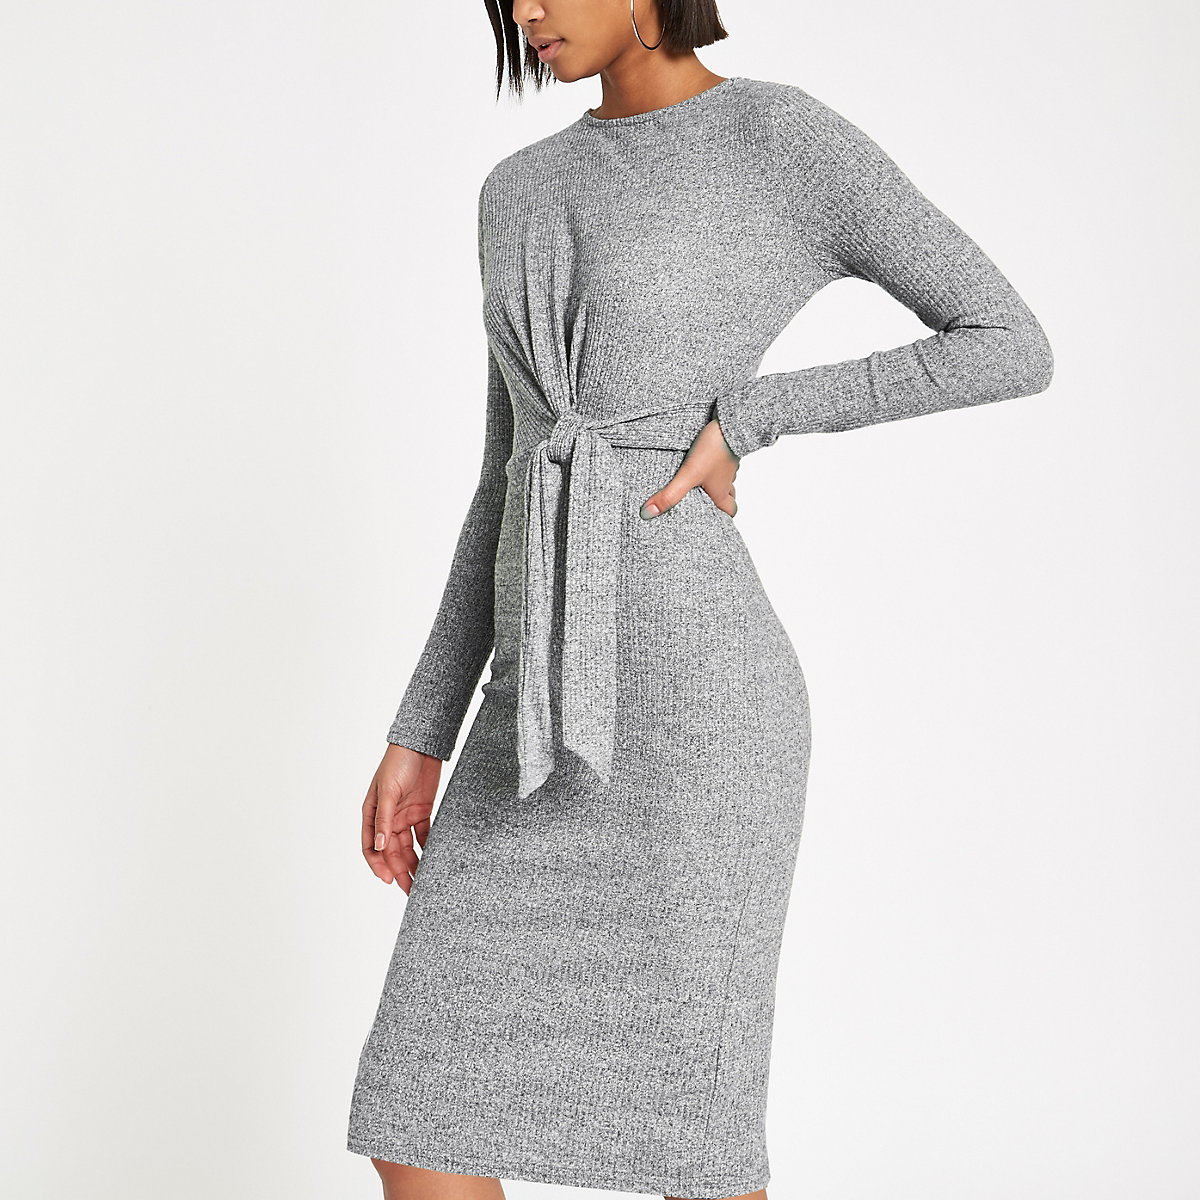 c7ea67c37797 Grey rib tie front midi dress - Bodycon Dresses - Dresses - women